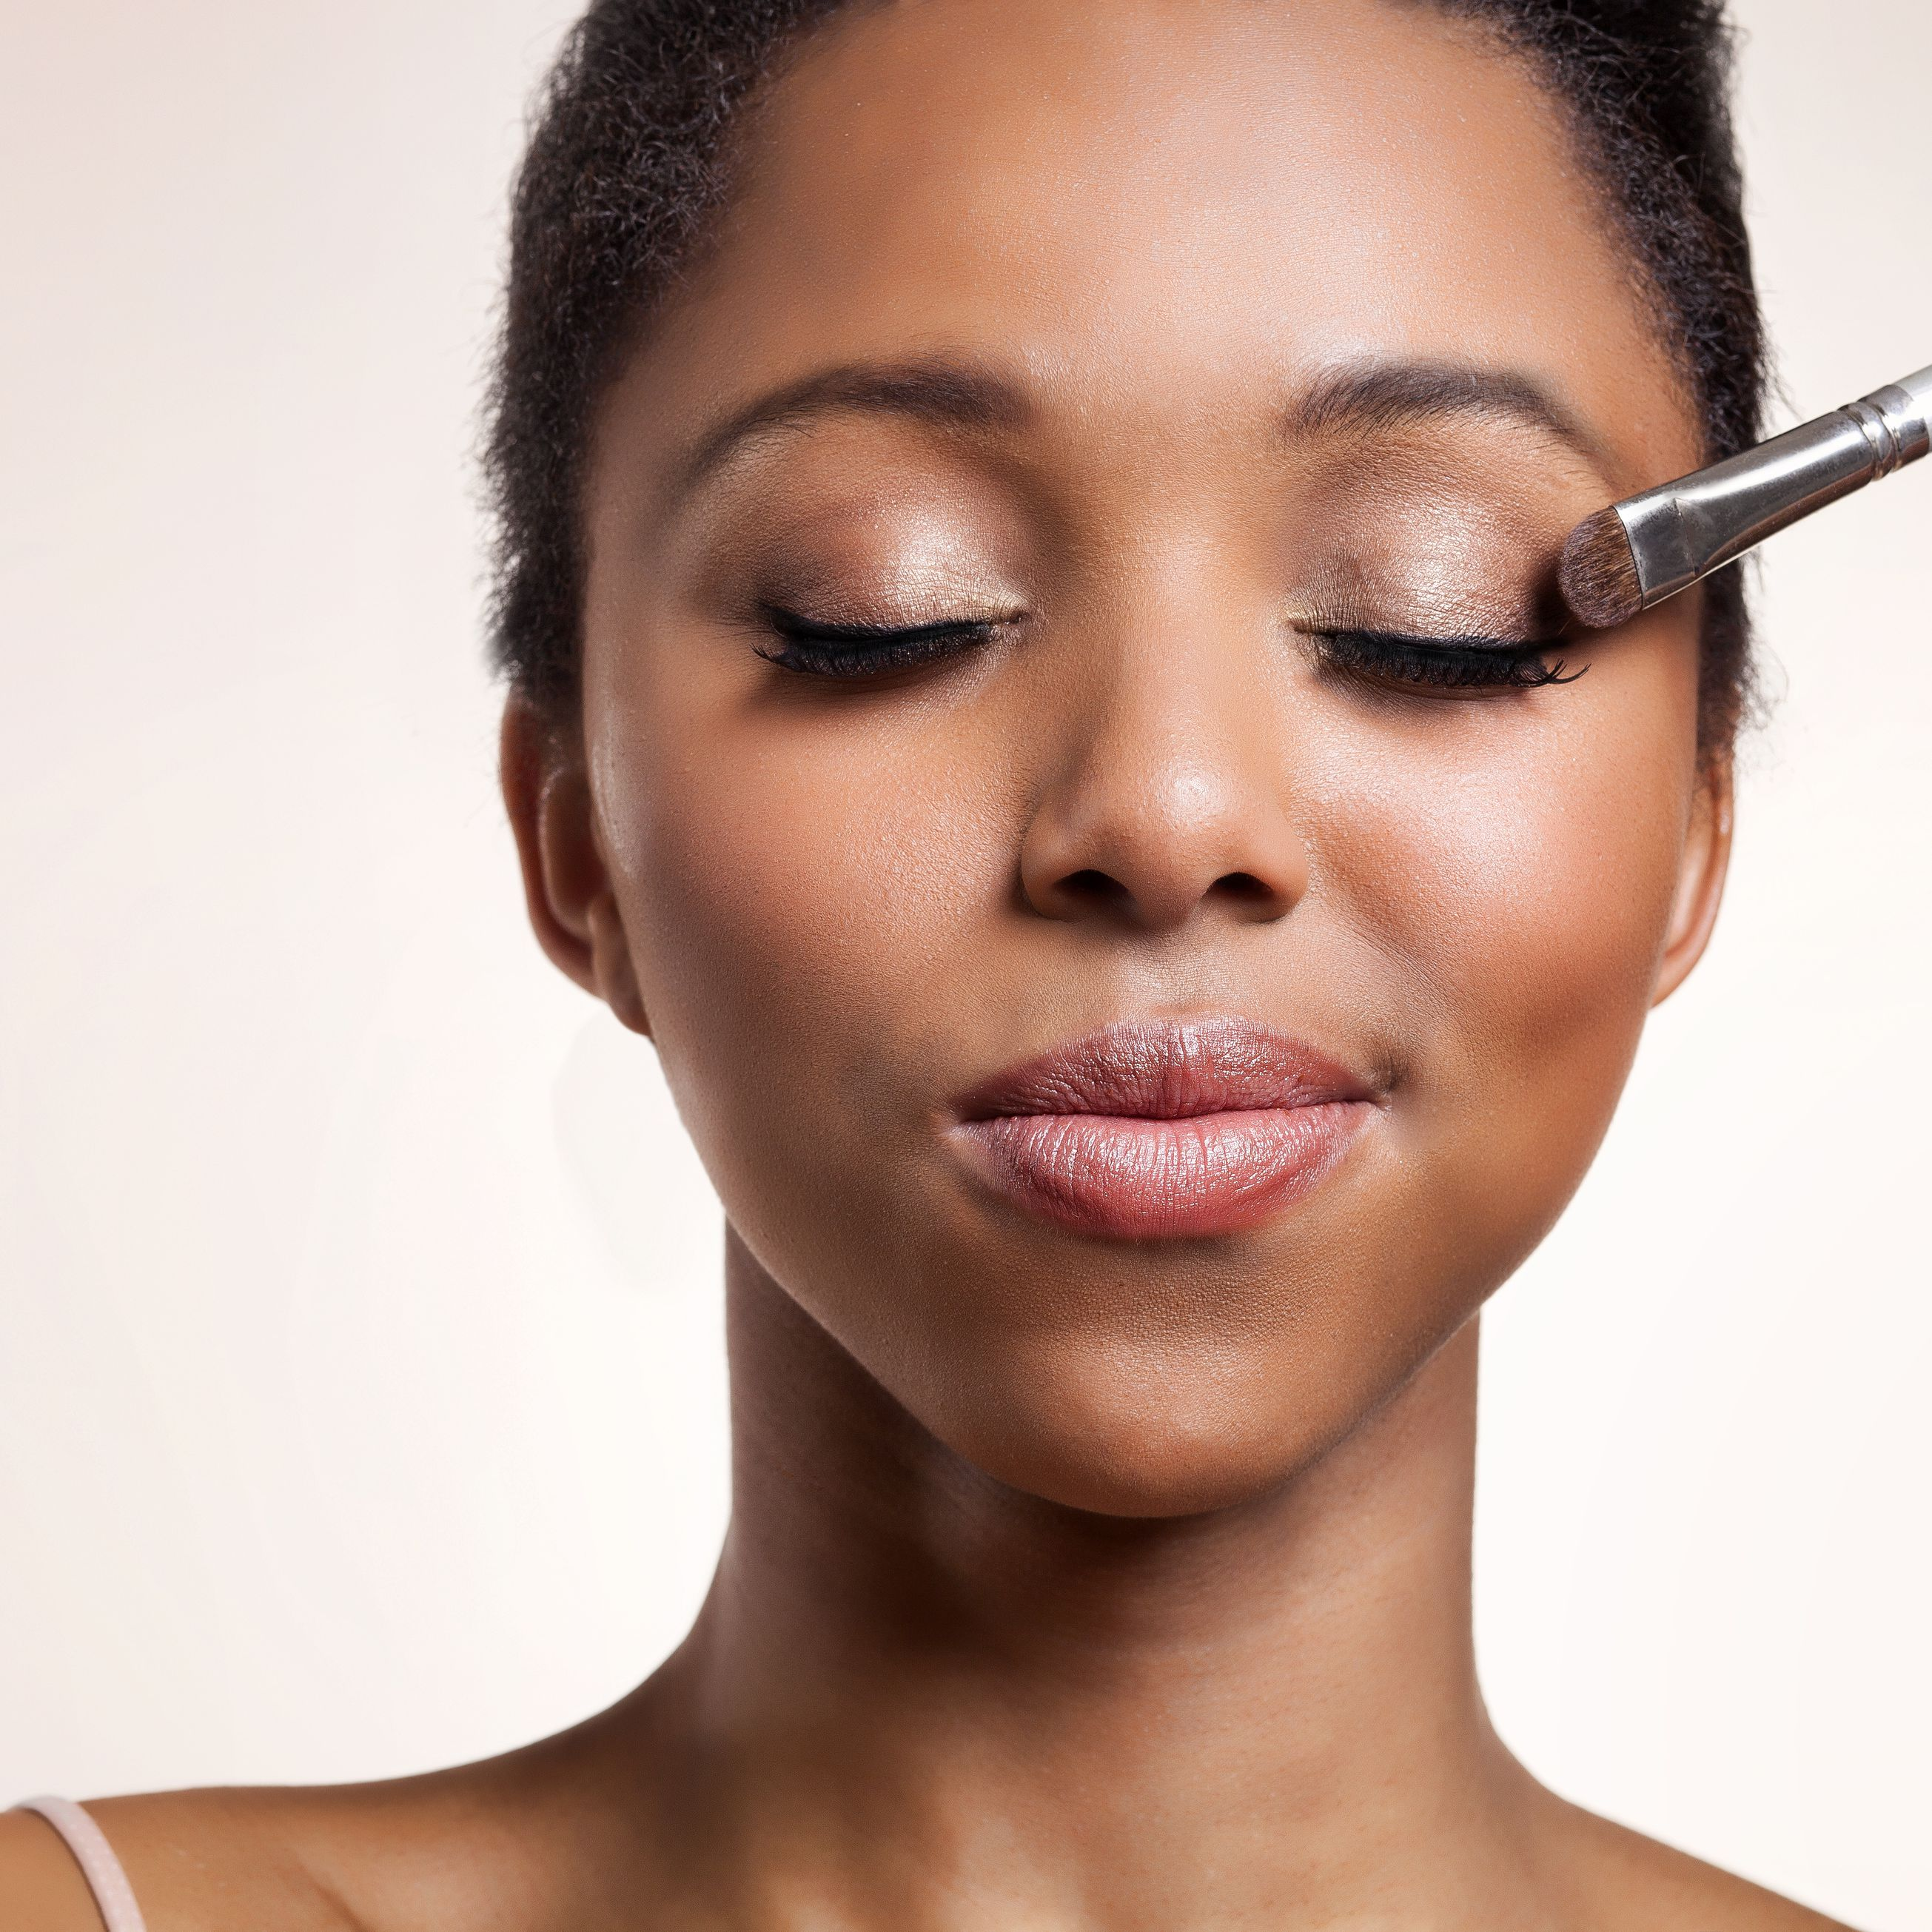 dfaeabc993c Job Interview Makeup Dos and Don'ts